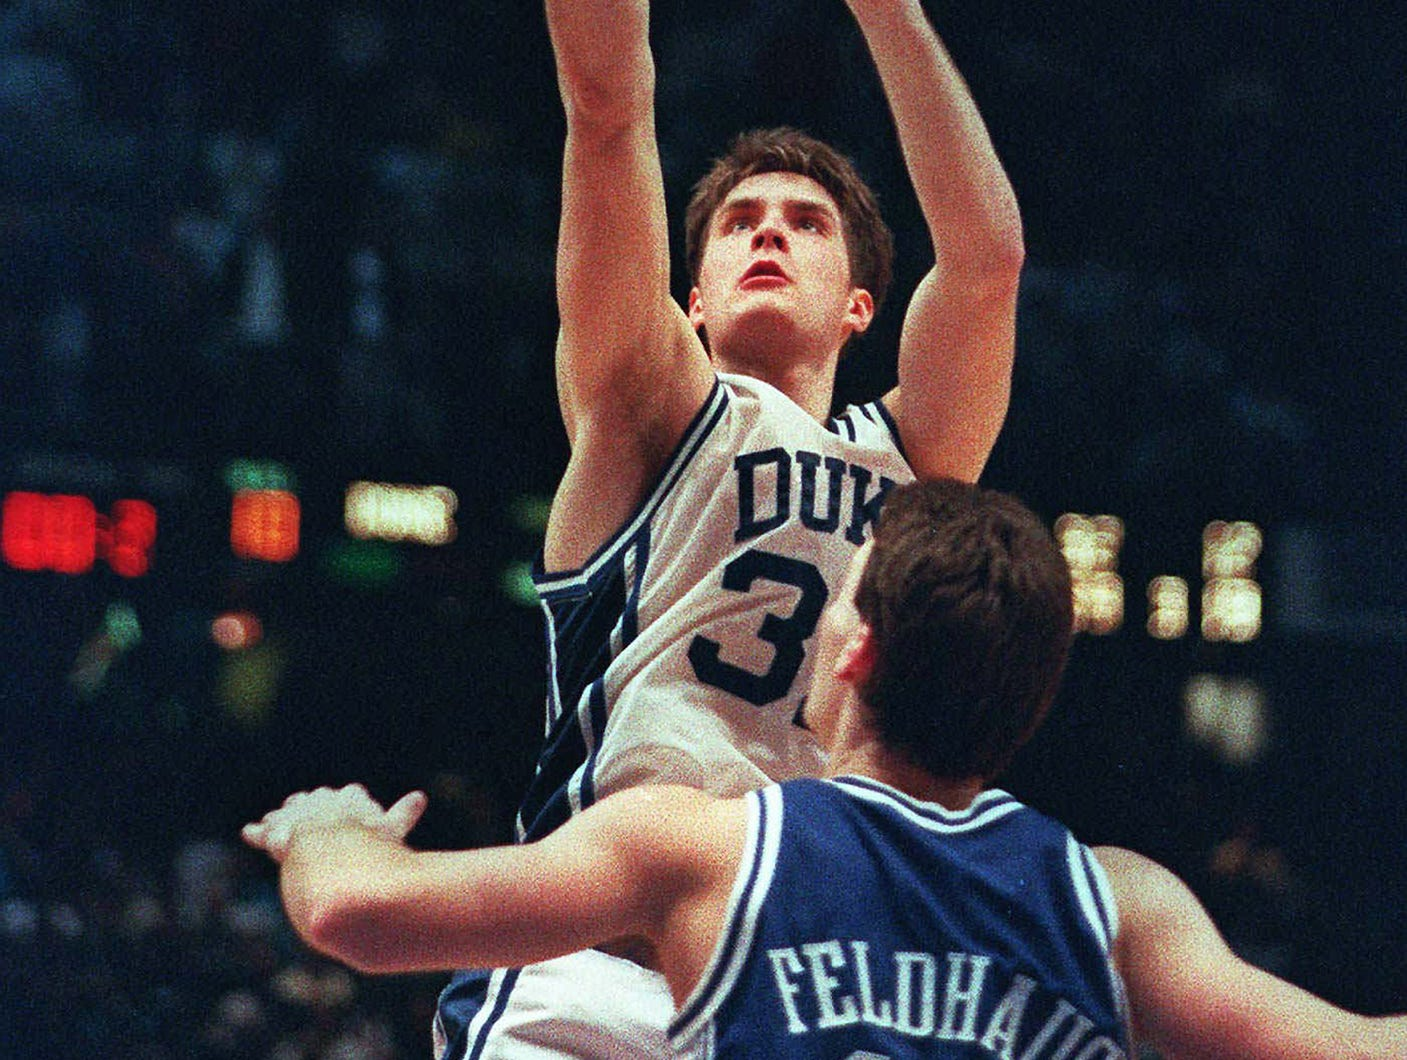 Duke's Christian Laettner shoots the game-winning basket in overtime over Kentucky's Deron Feldhaus to win the East Finals NCAA college basketball game, in Philadelphia. Duke beat Kentucky 104-103.